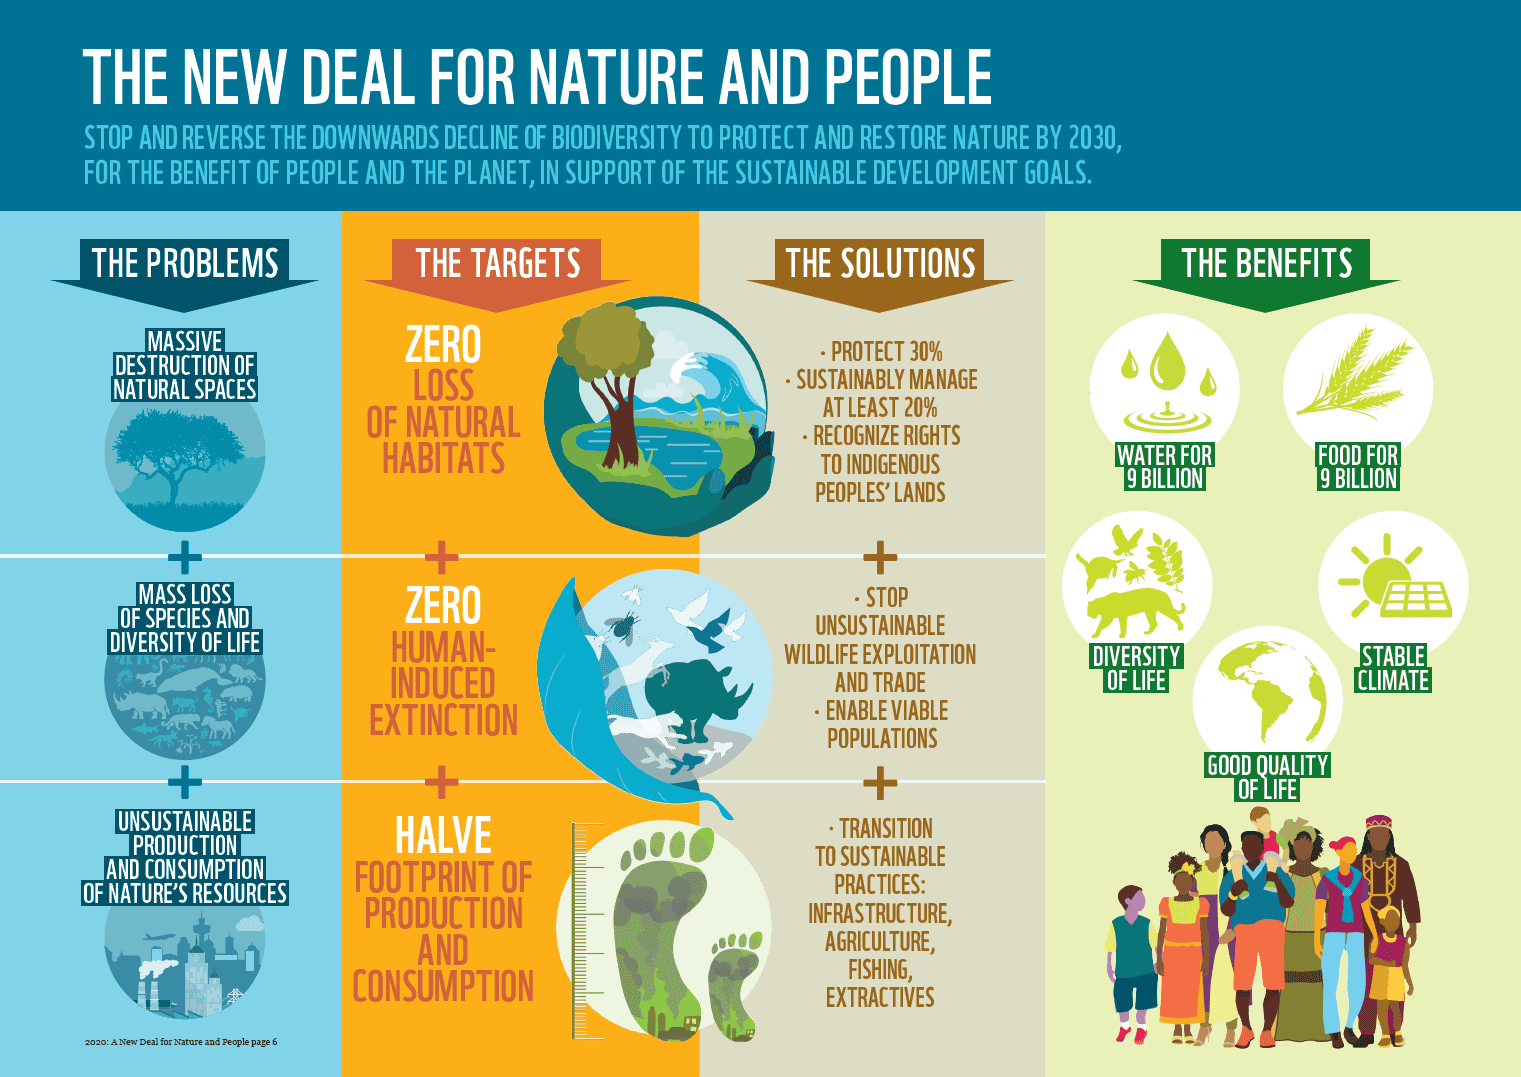 WWF's New Deal for Nature and People